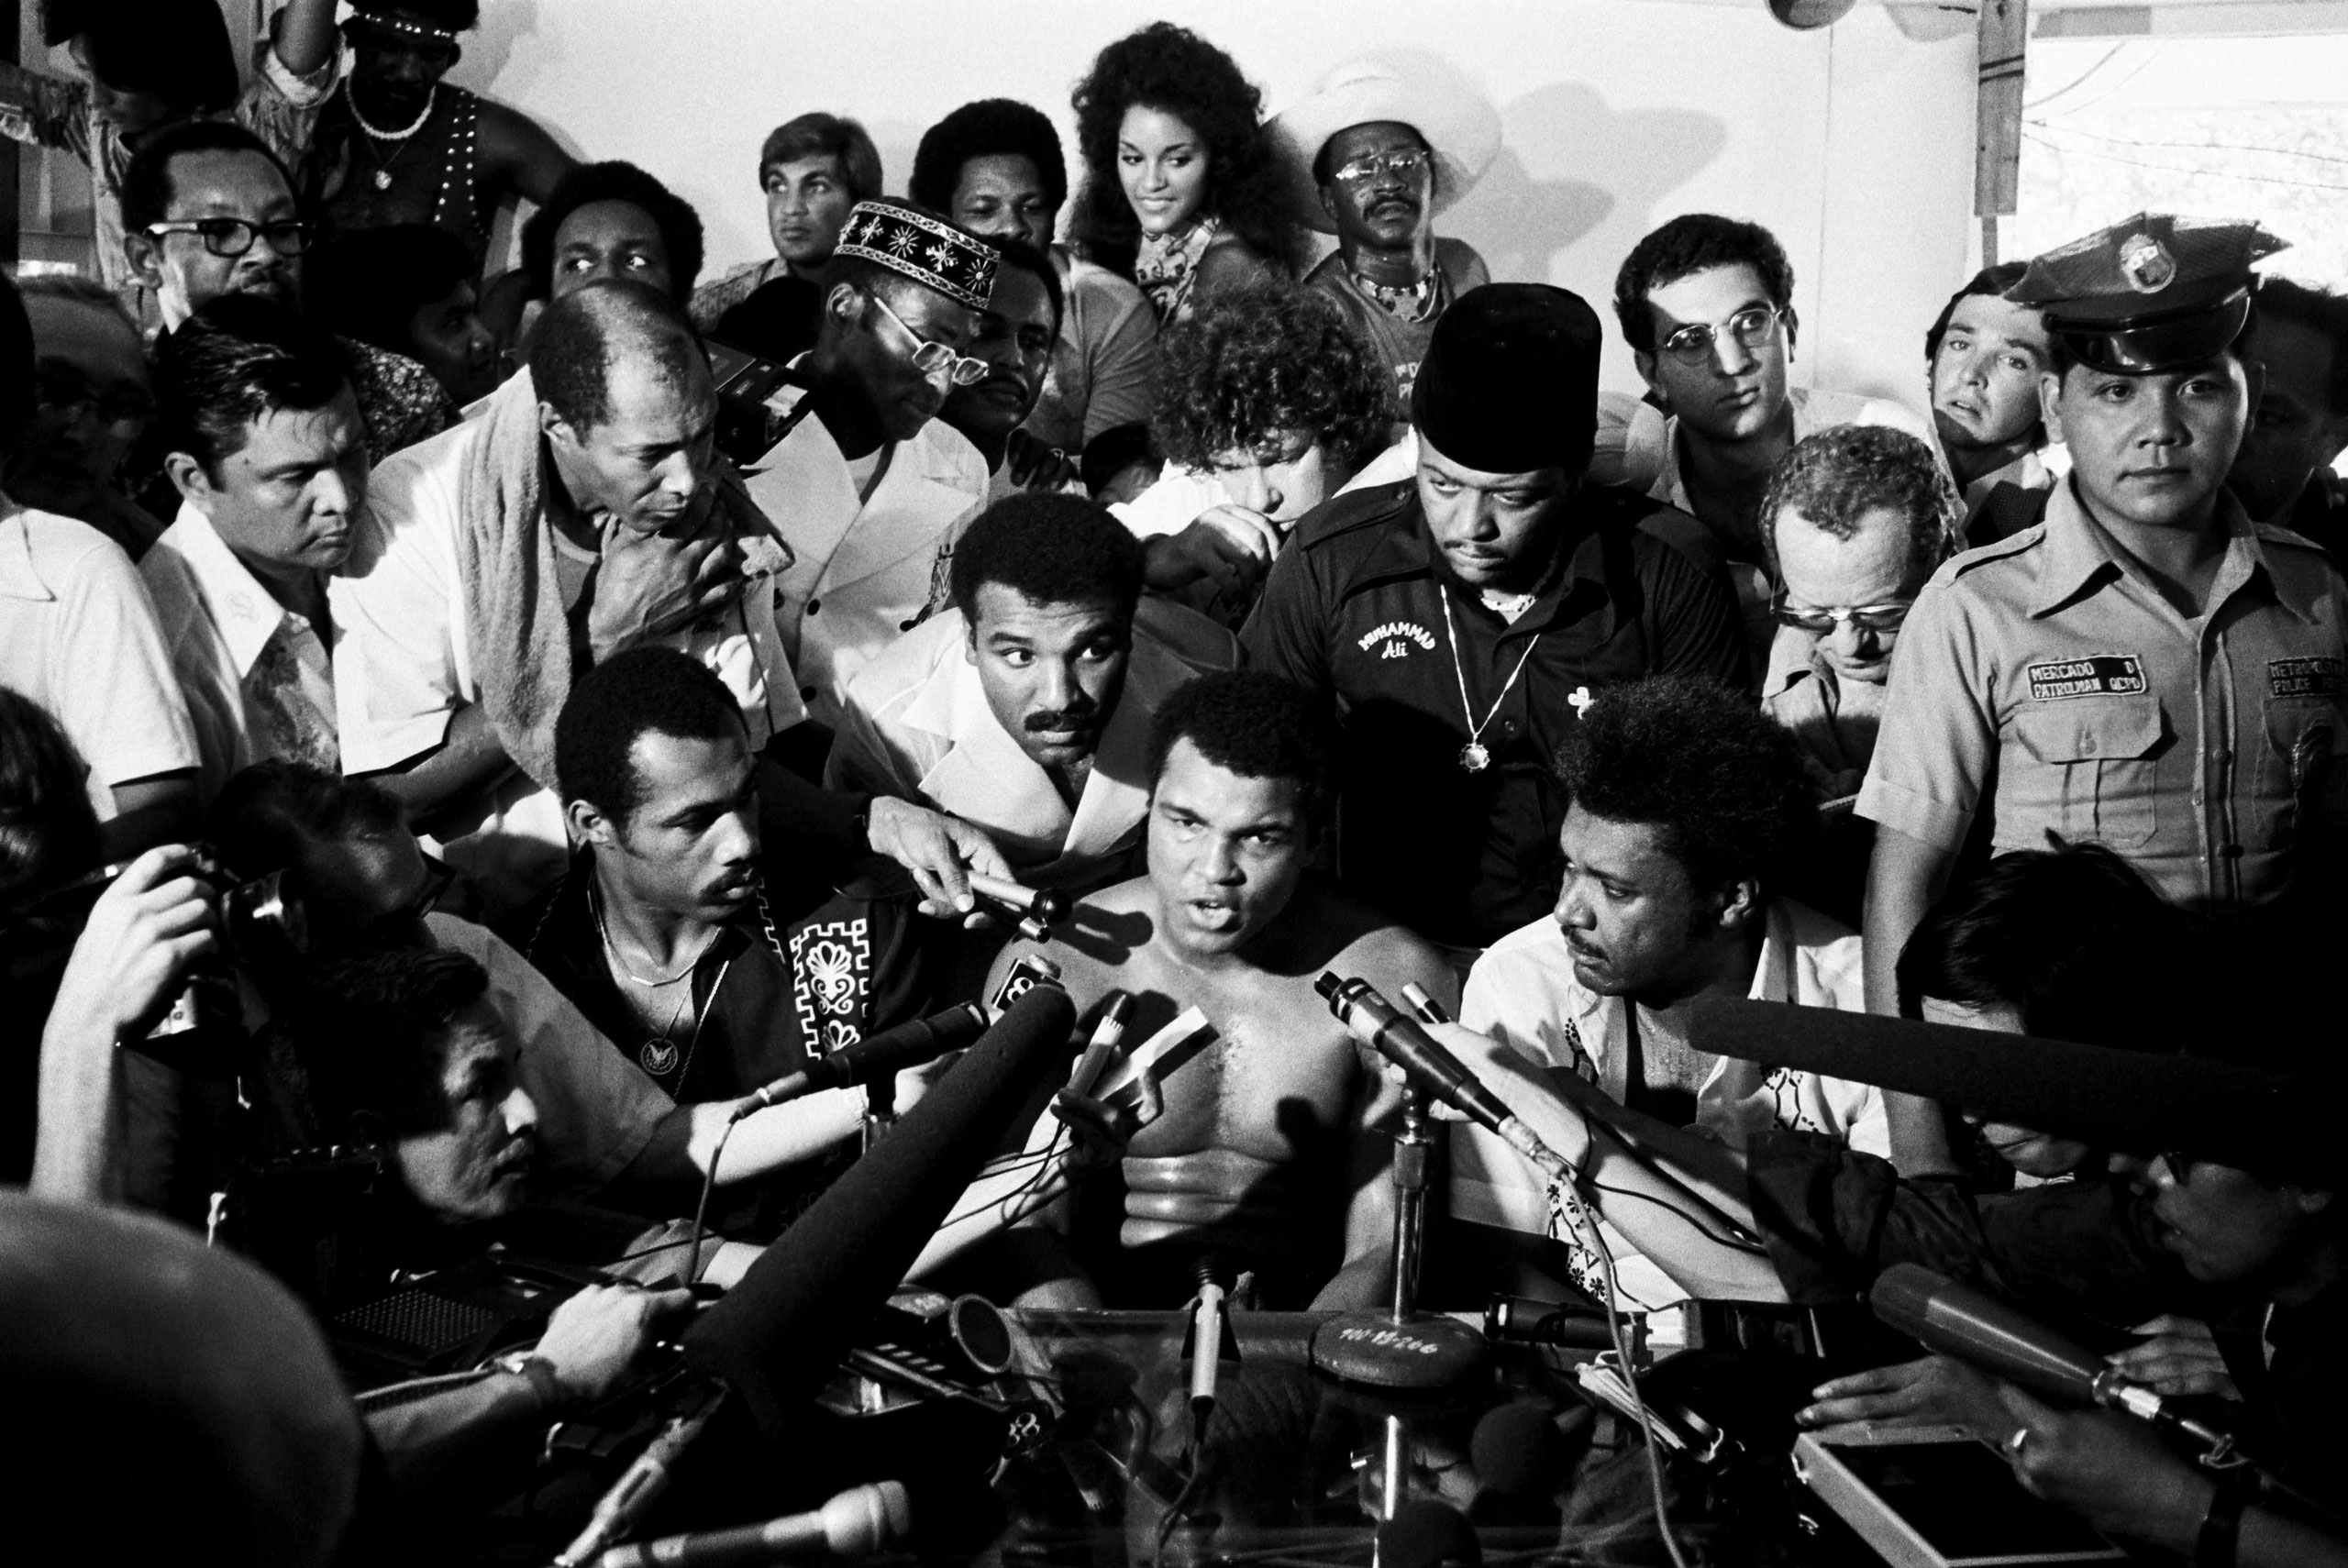 Ali defeated Joe Frazier once more in the  Thrilla In Manila . This fight surpassed their earlier bouts, and became one of the most well-known heavyweight fights ever.